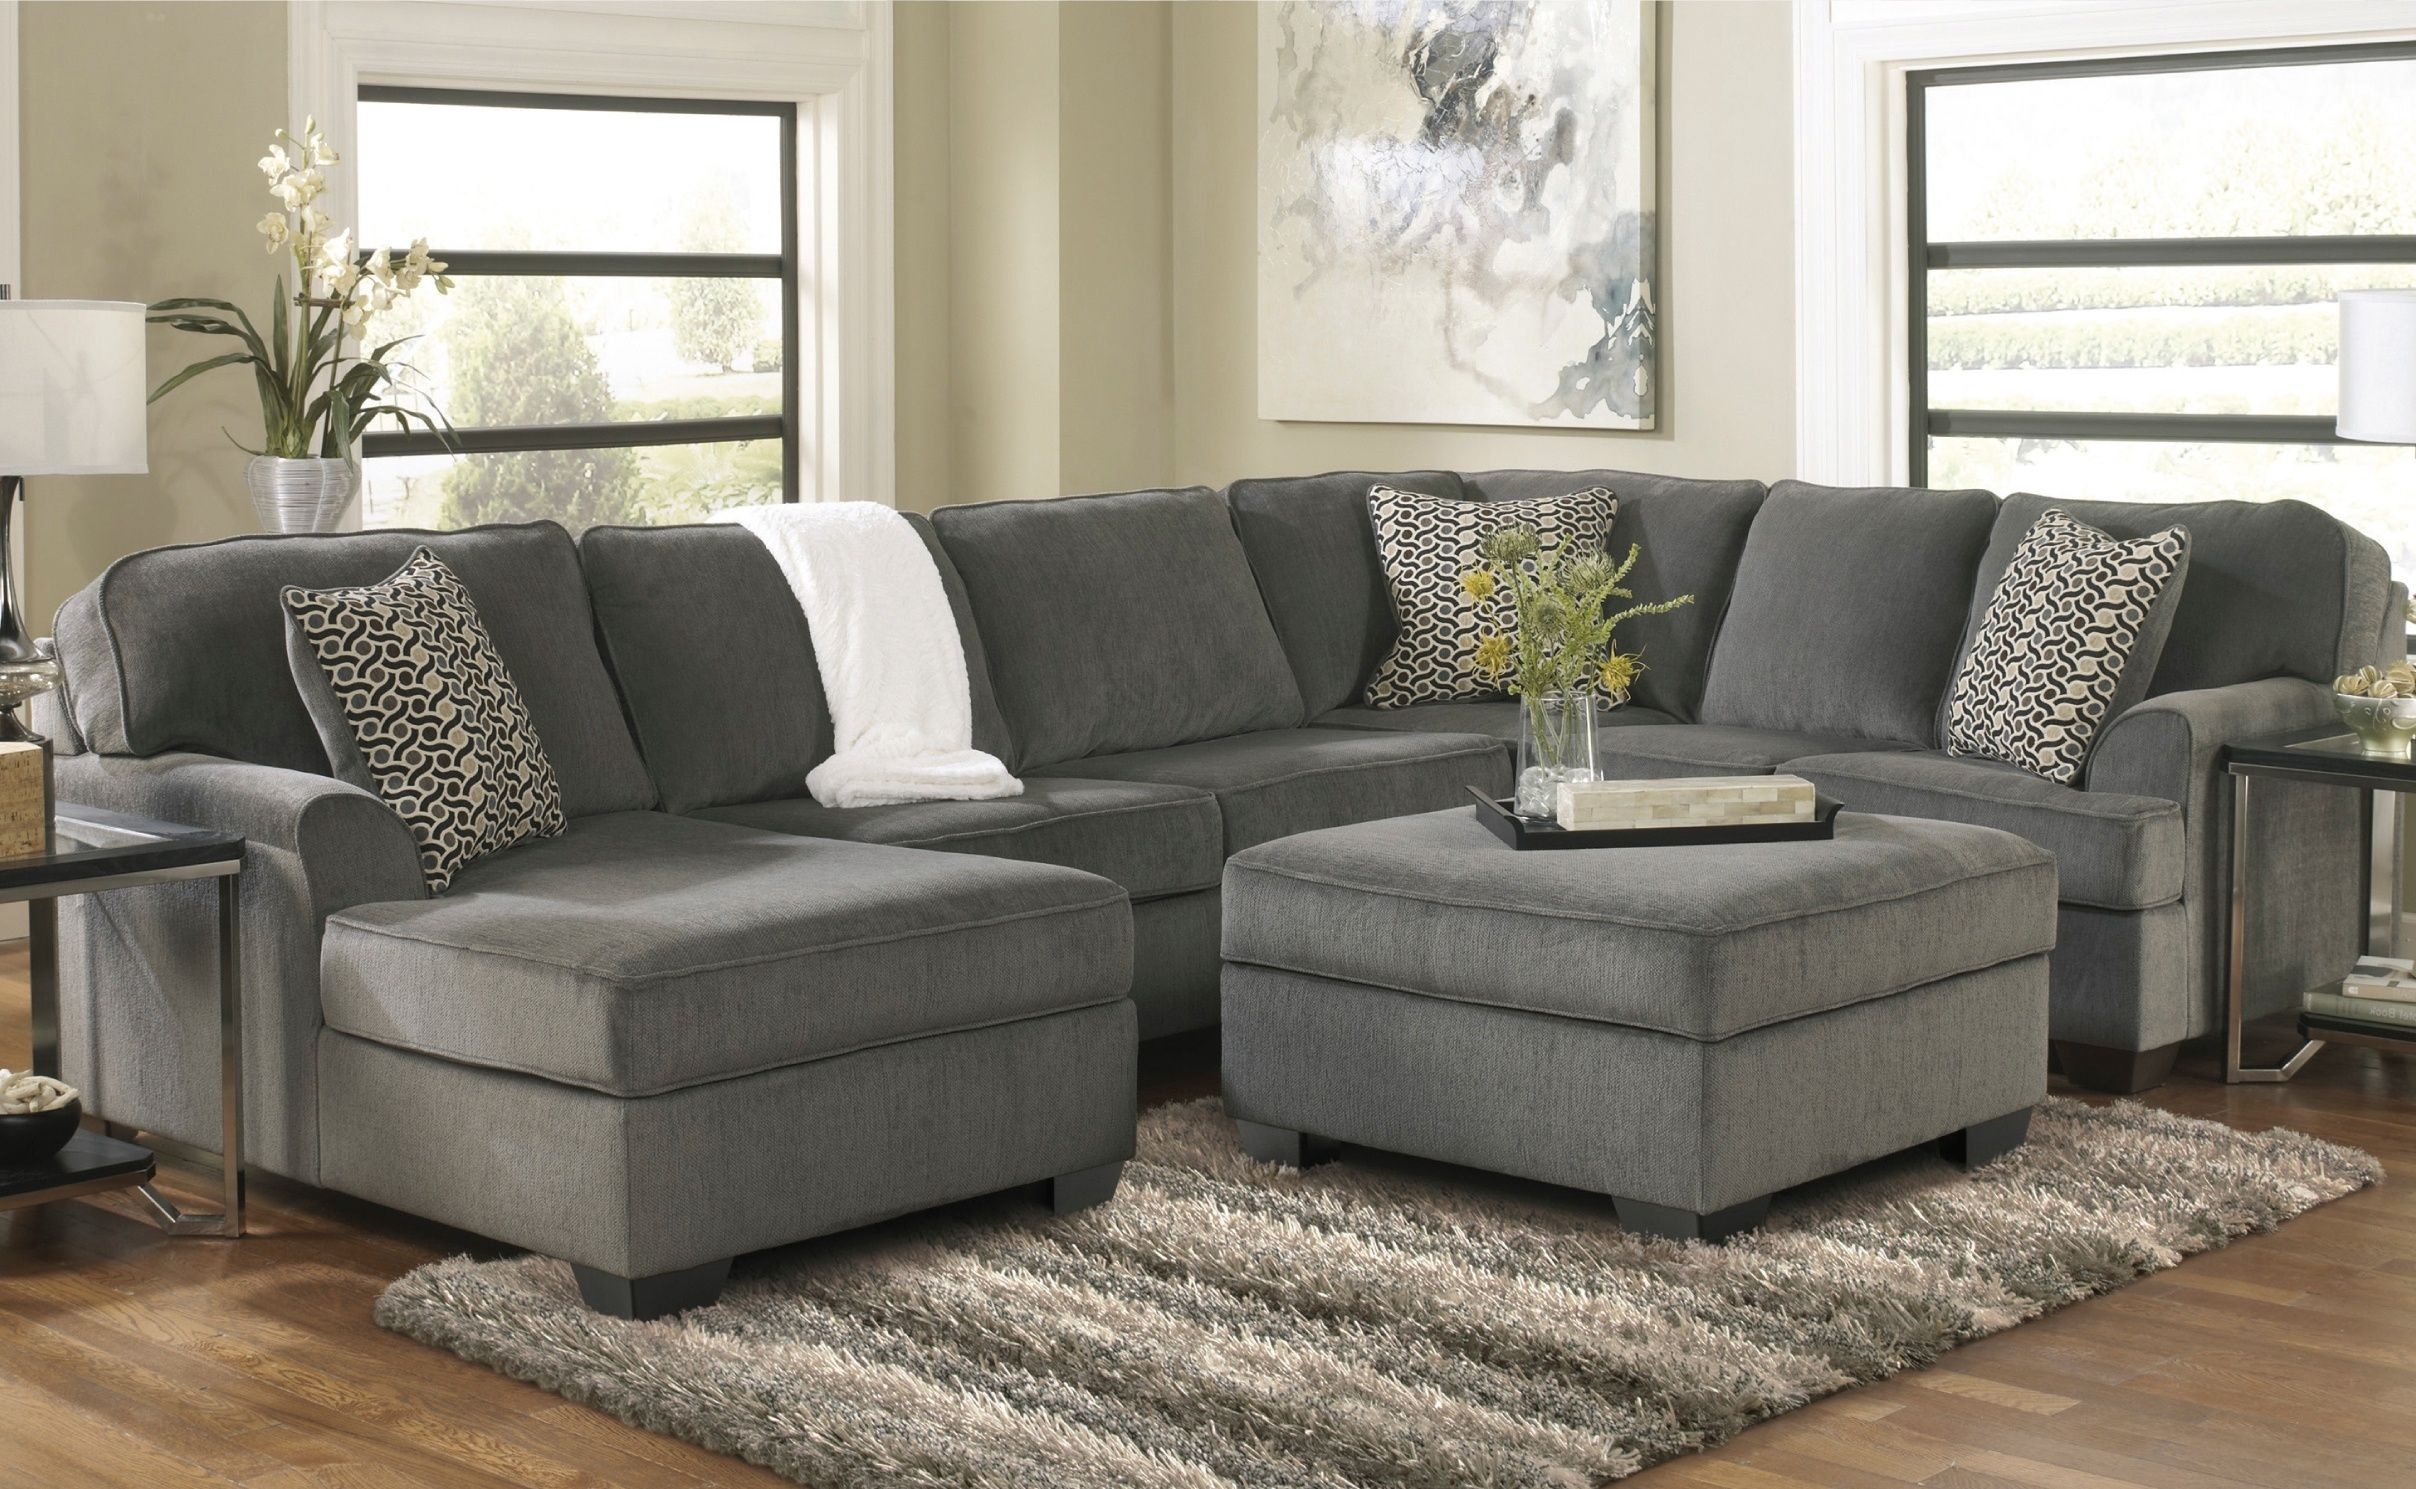 American Furniture Warehouse Couches Grey Couch Living Room